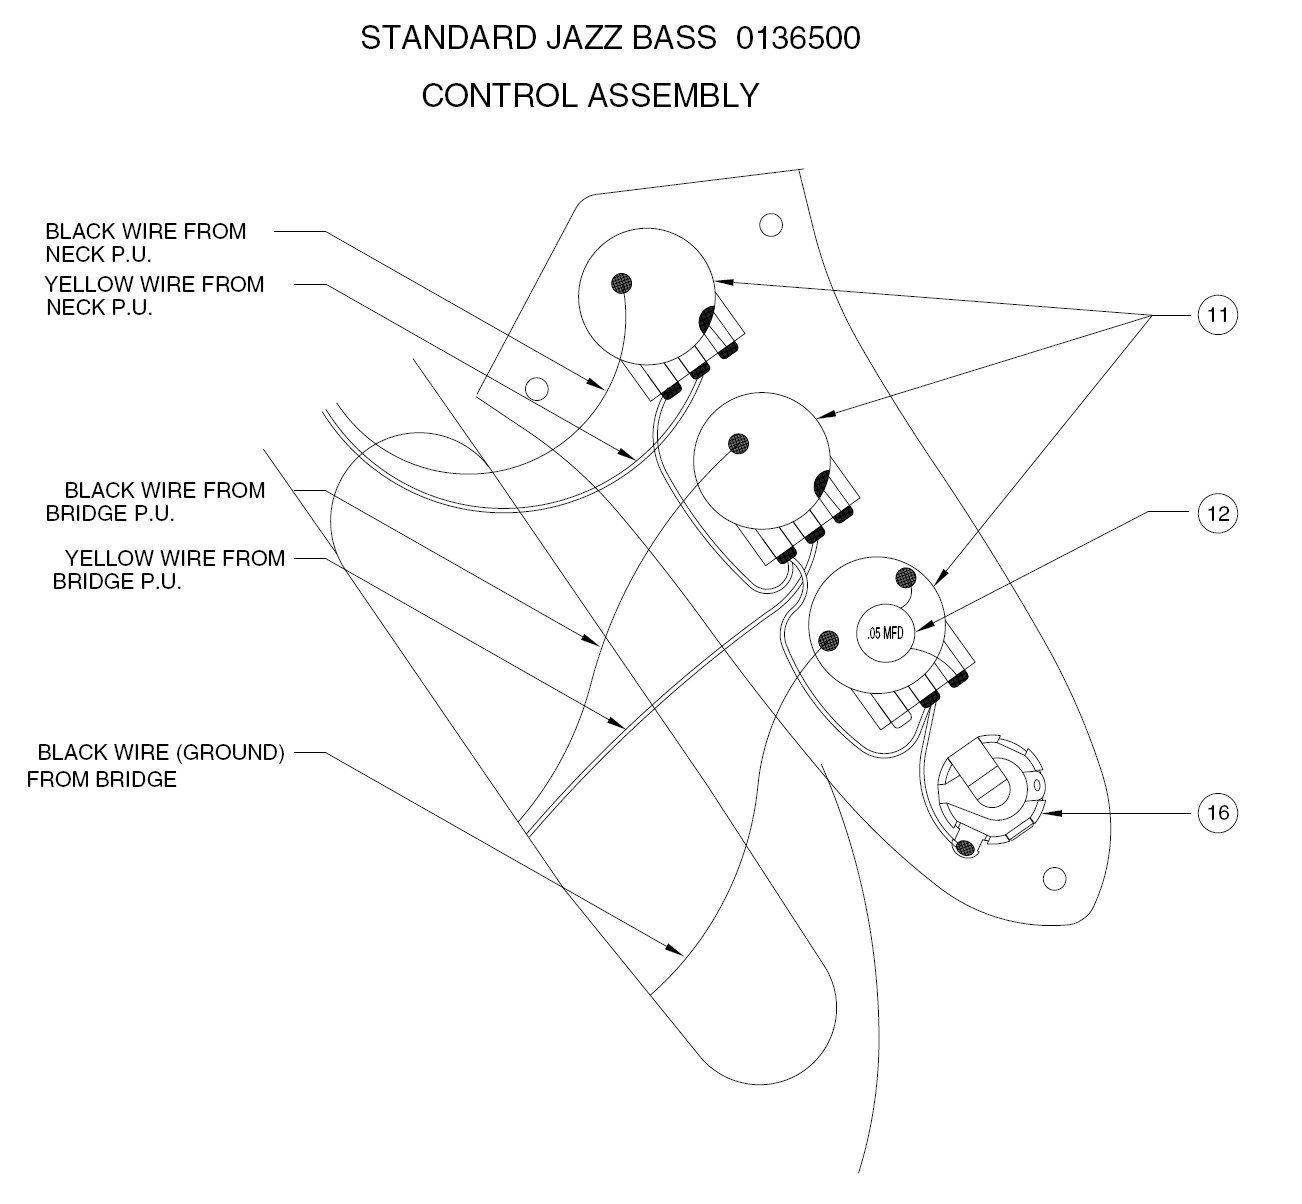 Jazz Guitar Wiring Diagram & Standard Jazz Bass Wiring Diagram Stratocaster  Electric Guitar Wiring Fender Active Jazz B Wiring Diagram